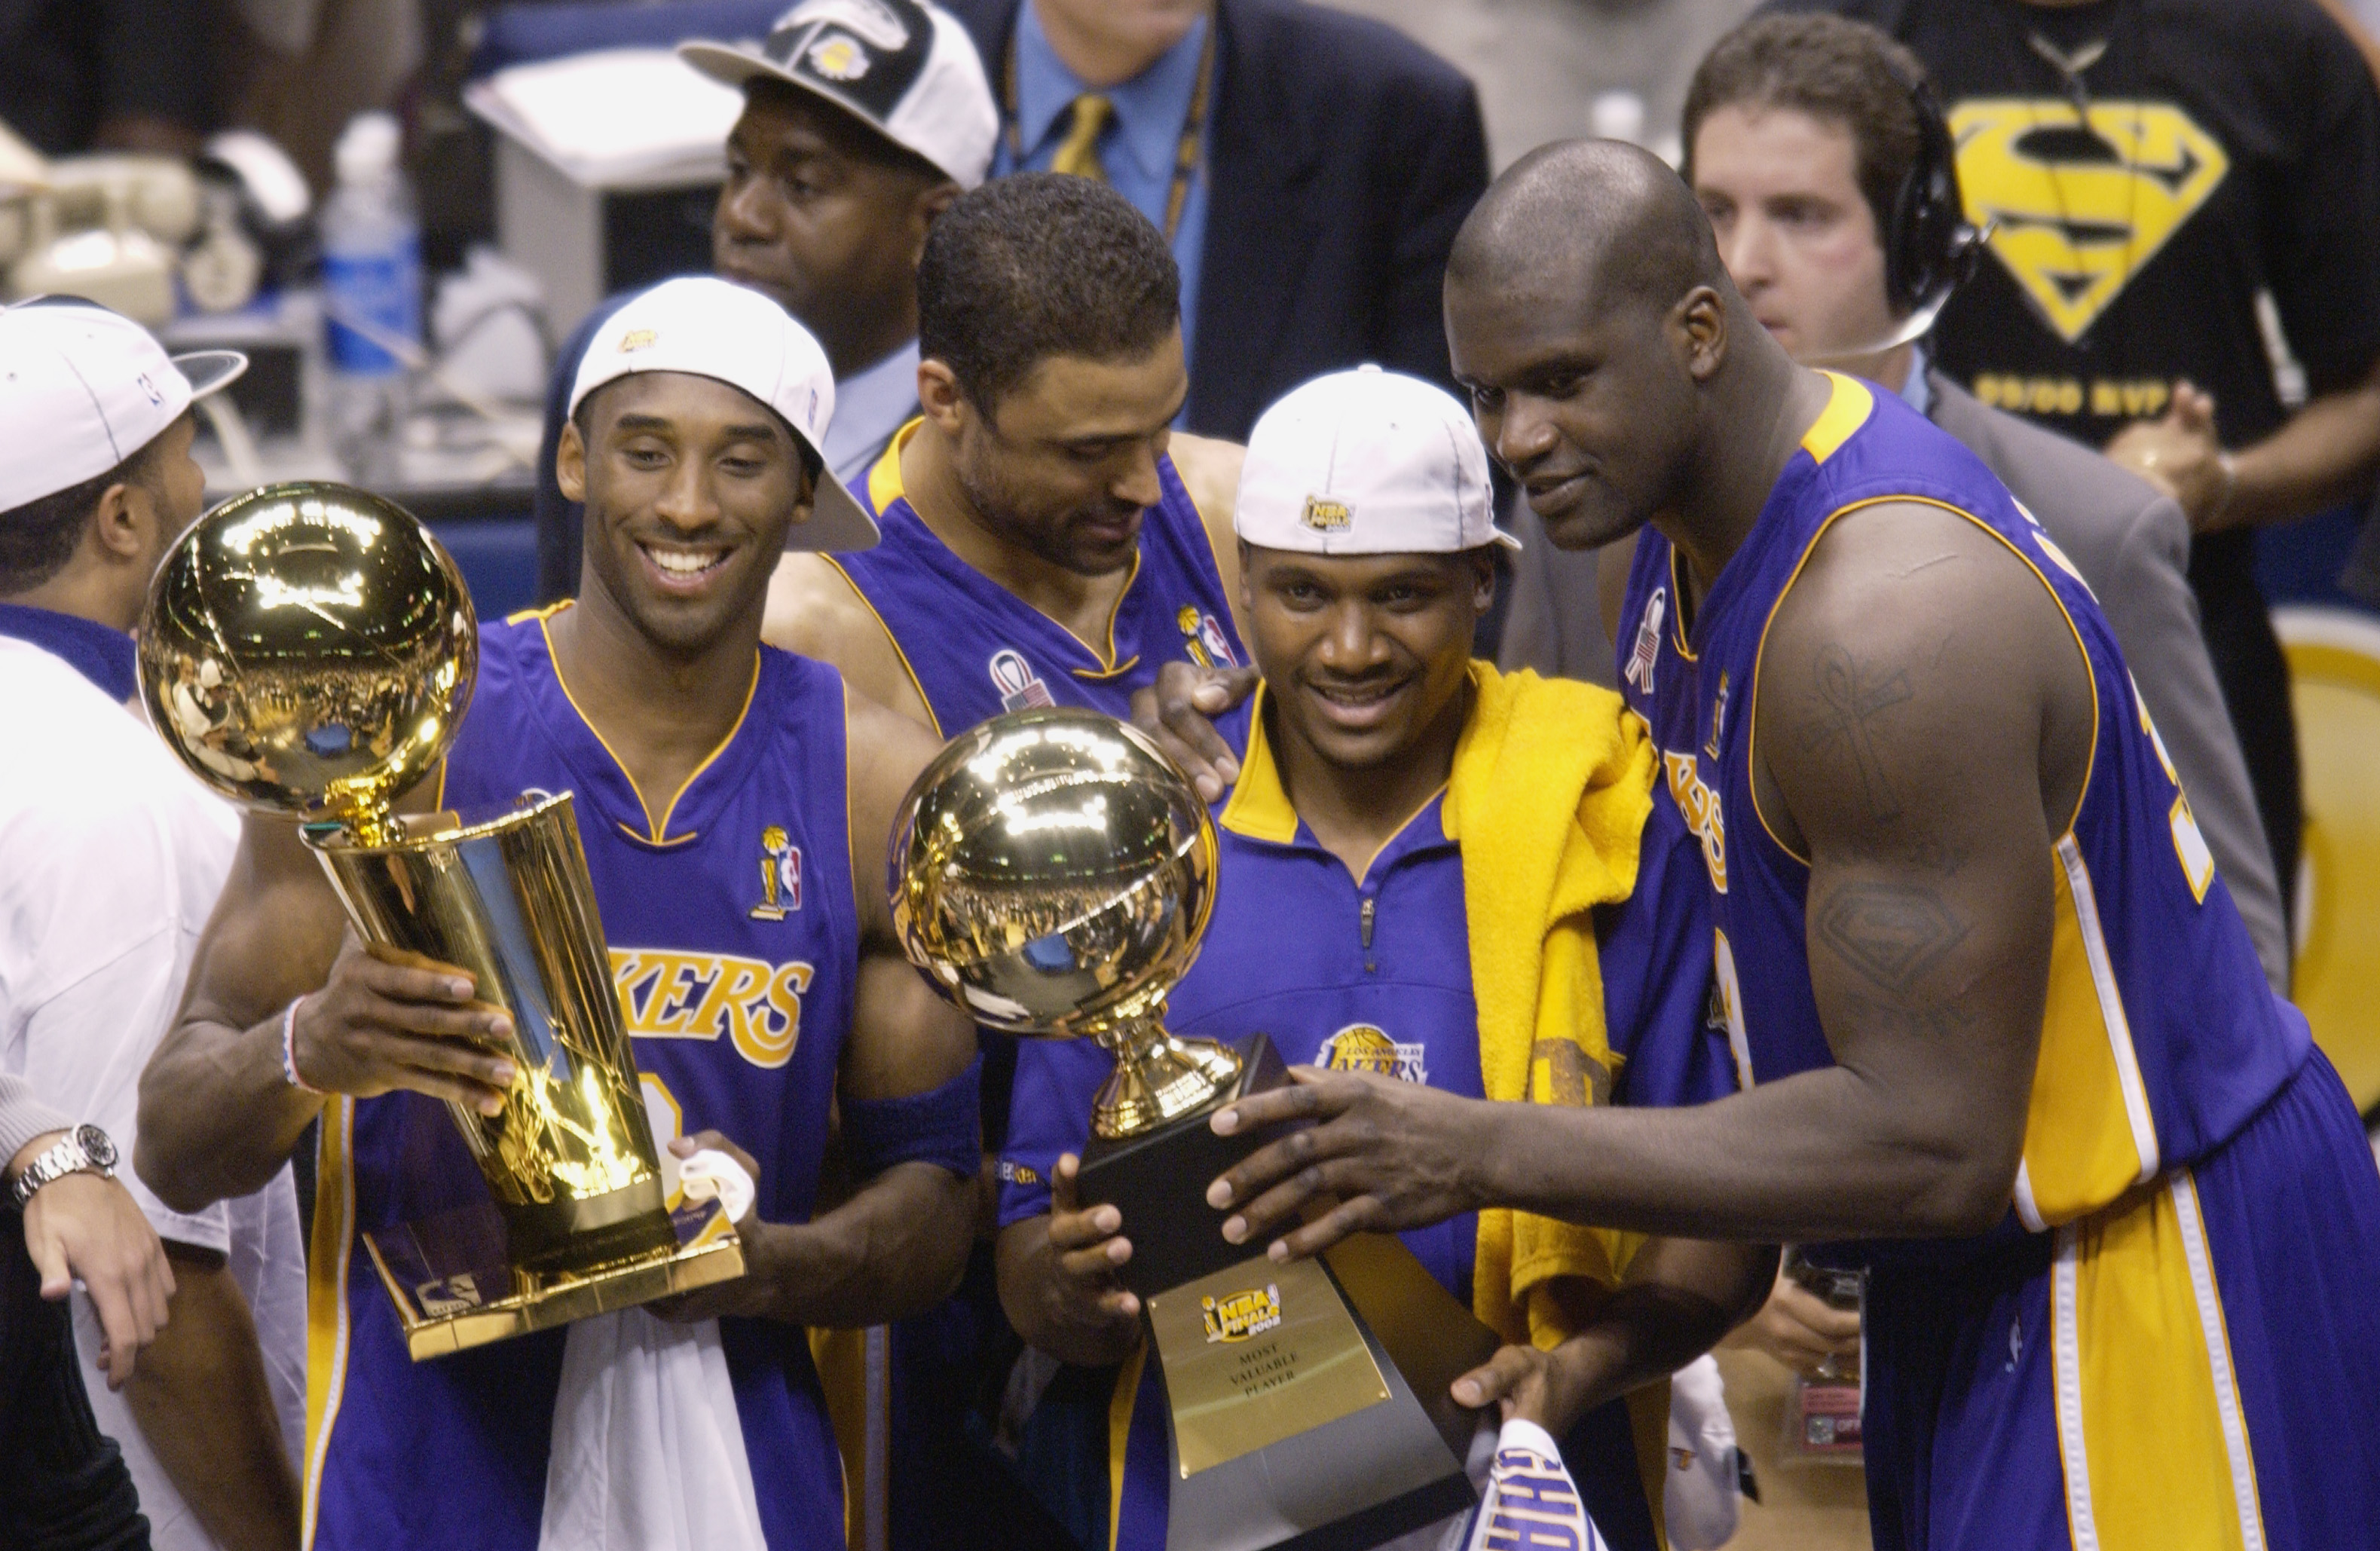 Bryant, Lindsey Hunter and Shaquille O'Neal celebrate their win over the New Jersey Nets in Game four of the 2002 NBA Finals at Continental Airlines Arena in East Rutherford, N.J. on June 12, 2002. Bryant, aside from further cementing his superstar status, became the youngest player to win three NBA titles.